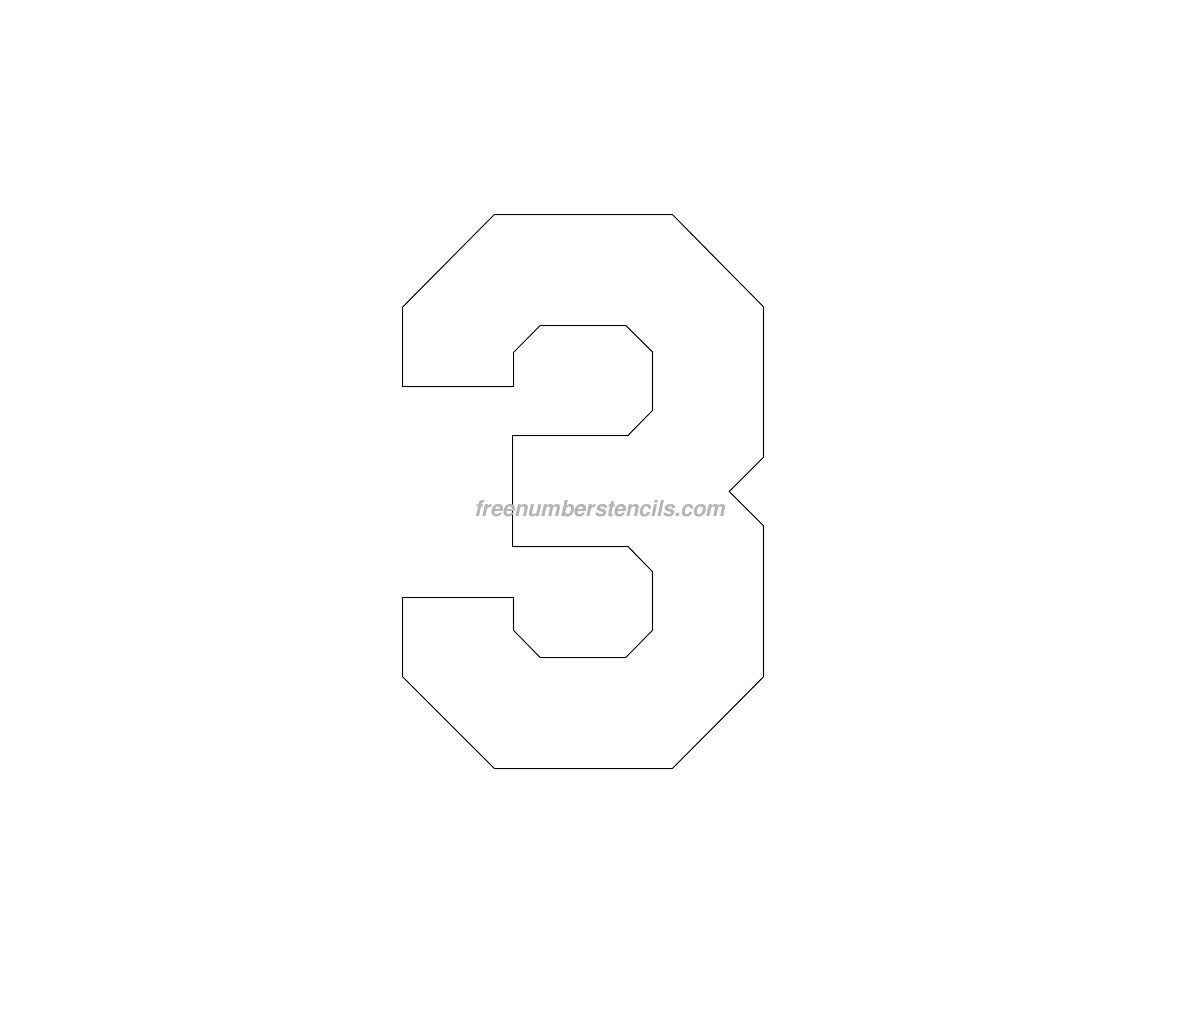 Free jersey printable 3 number stencil for Free number templates to print